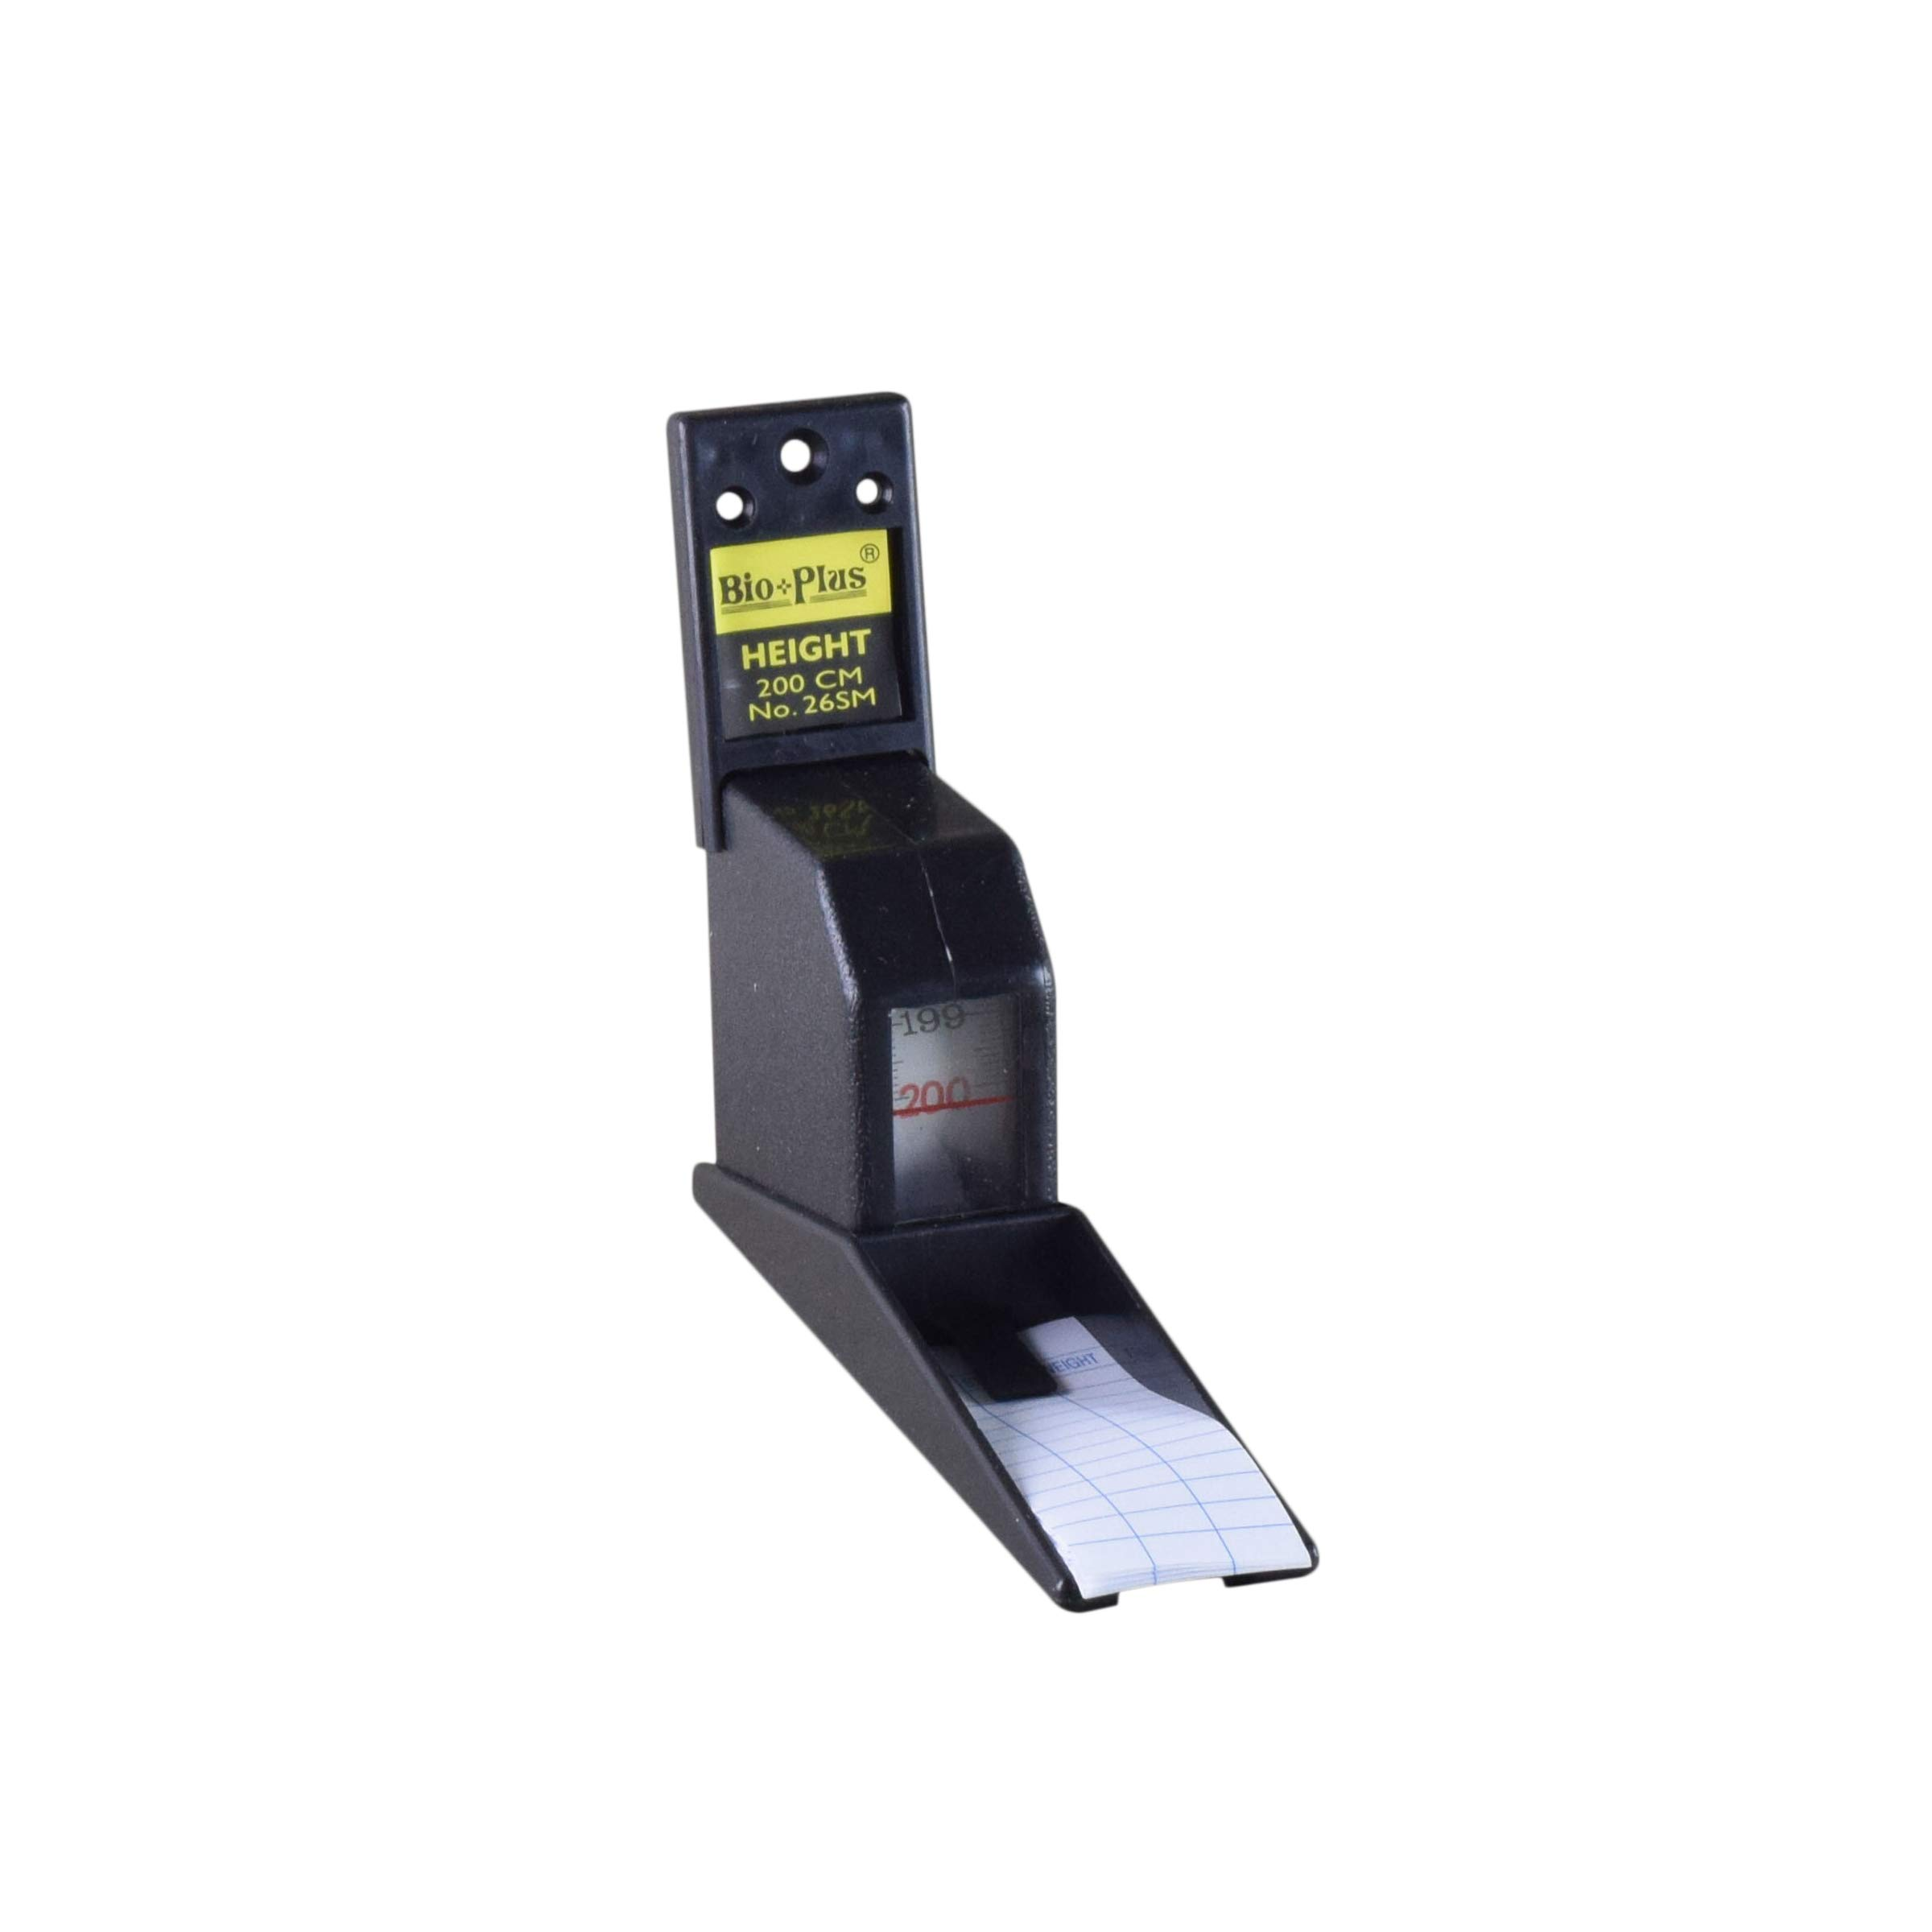 200cm/78inch Height Measuring Stature Meter